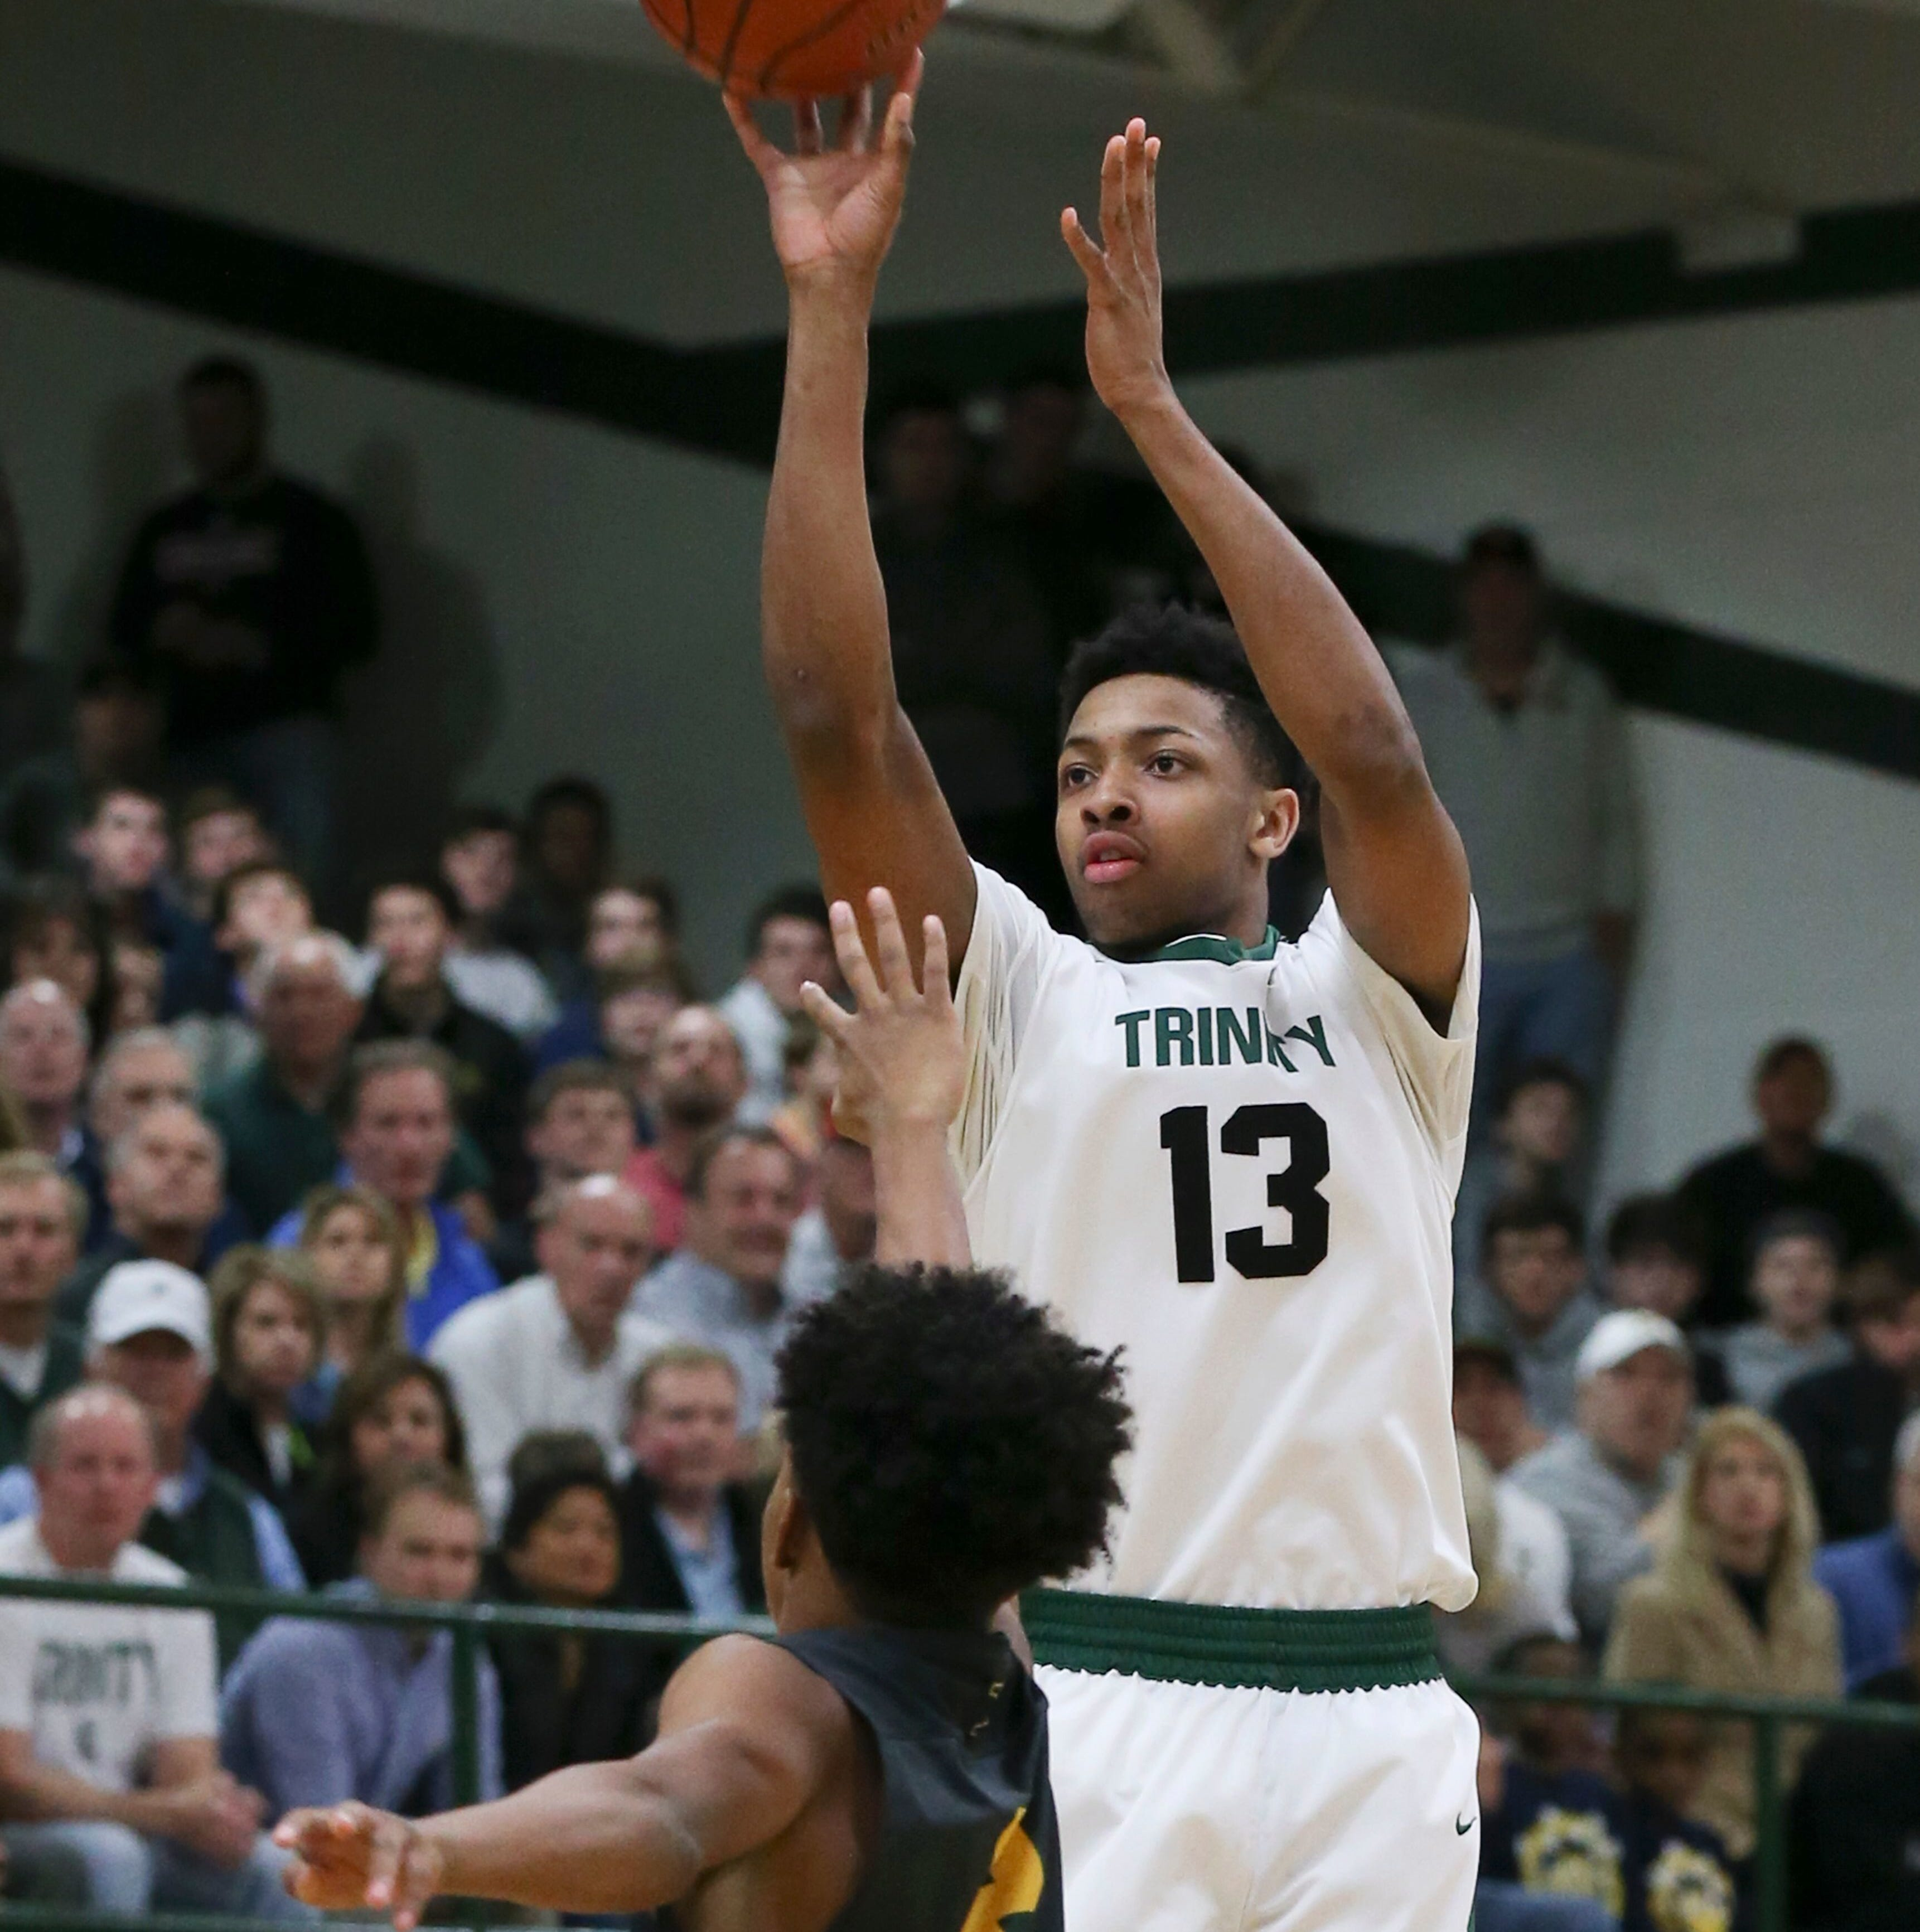 Trinity High basketball star David Johnson plans visit to Louisville